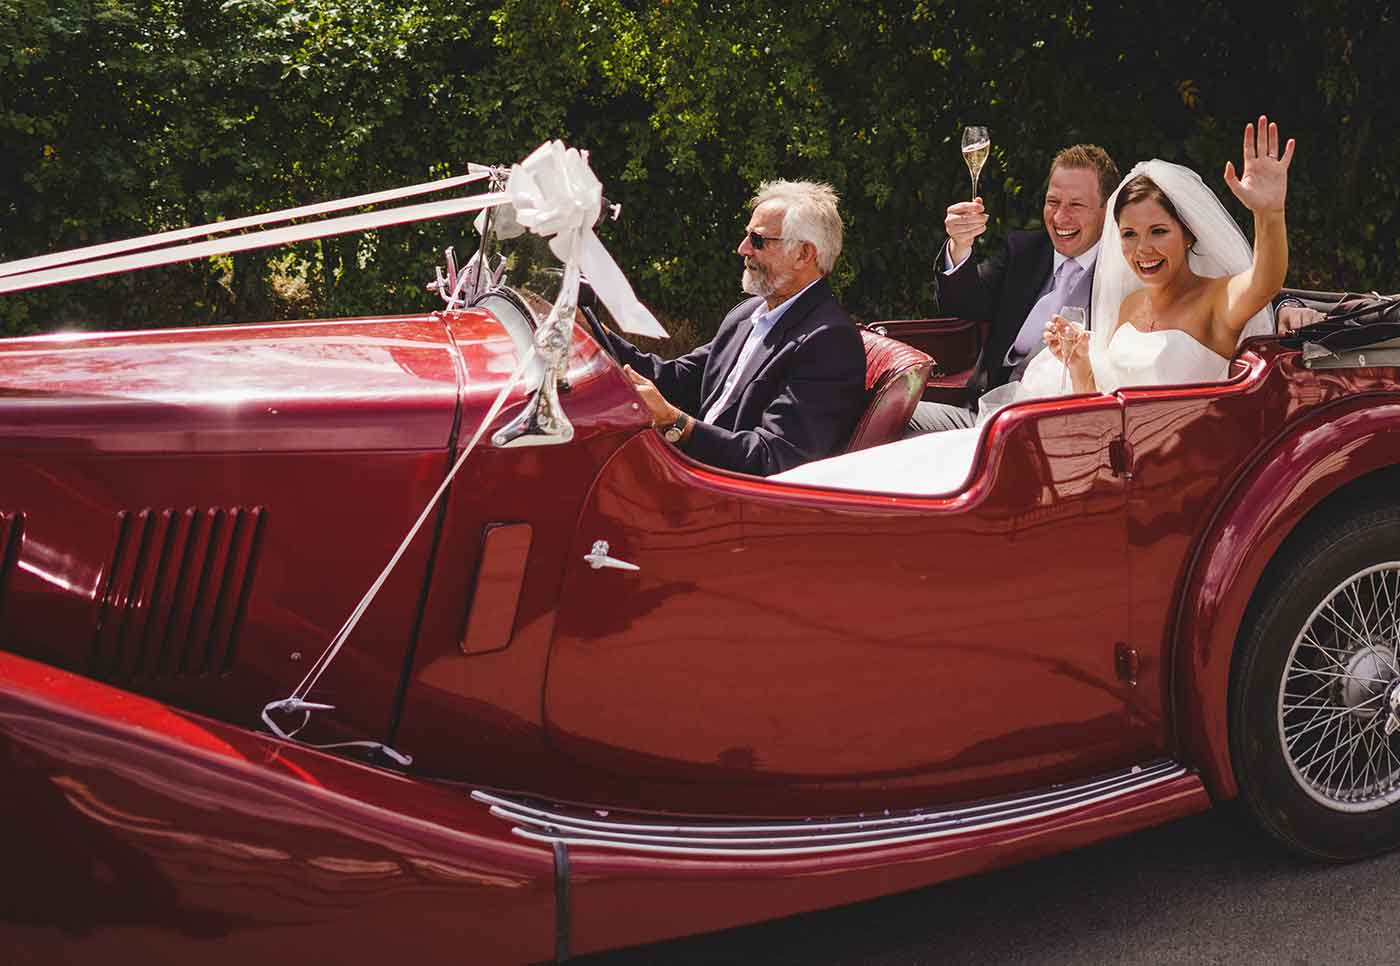 Car leaving a Church in North Wales with bride and groom